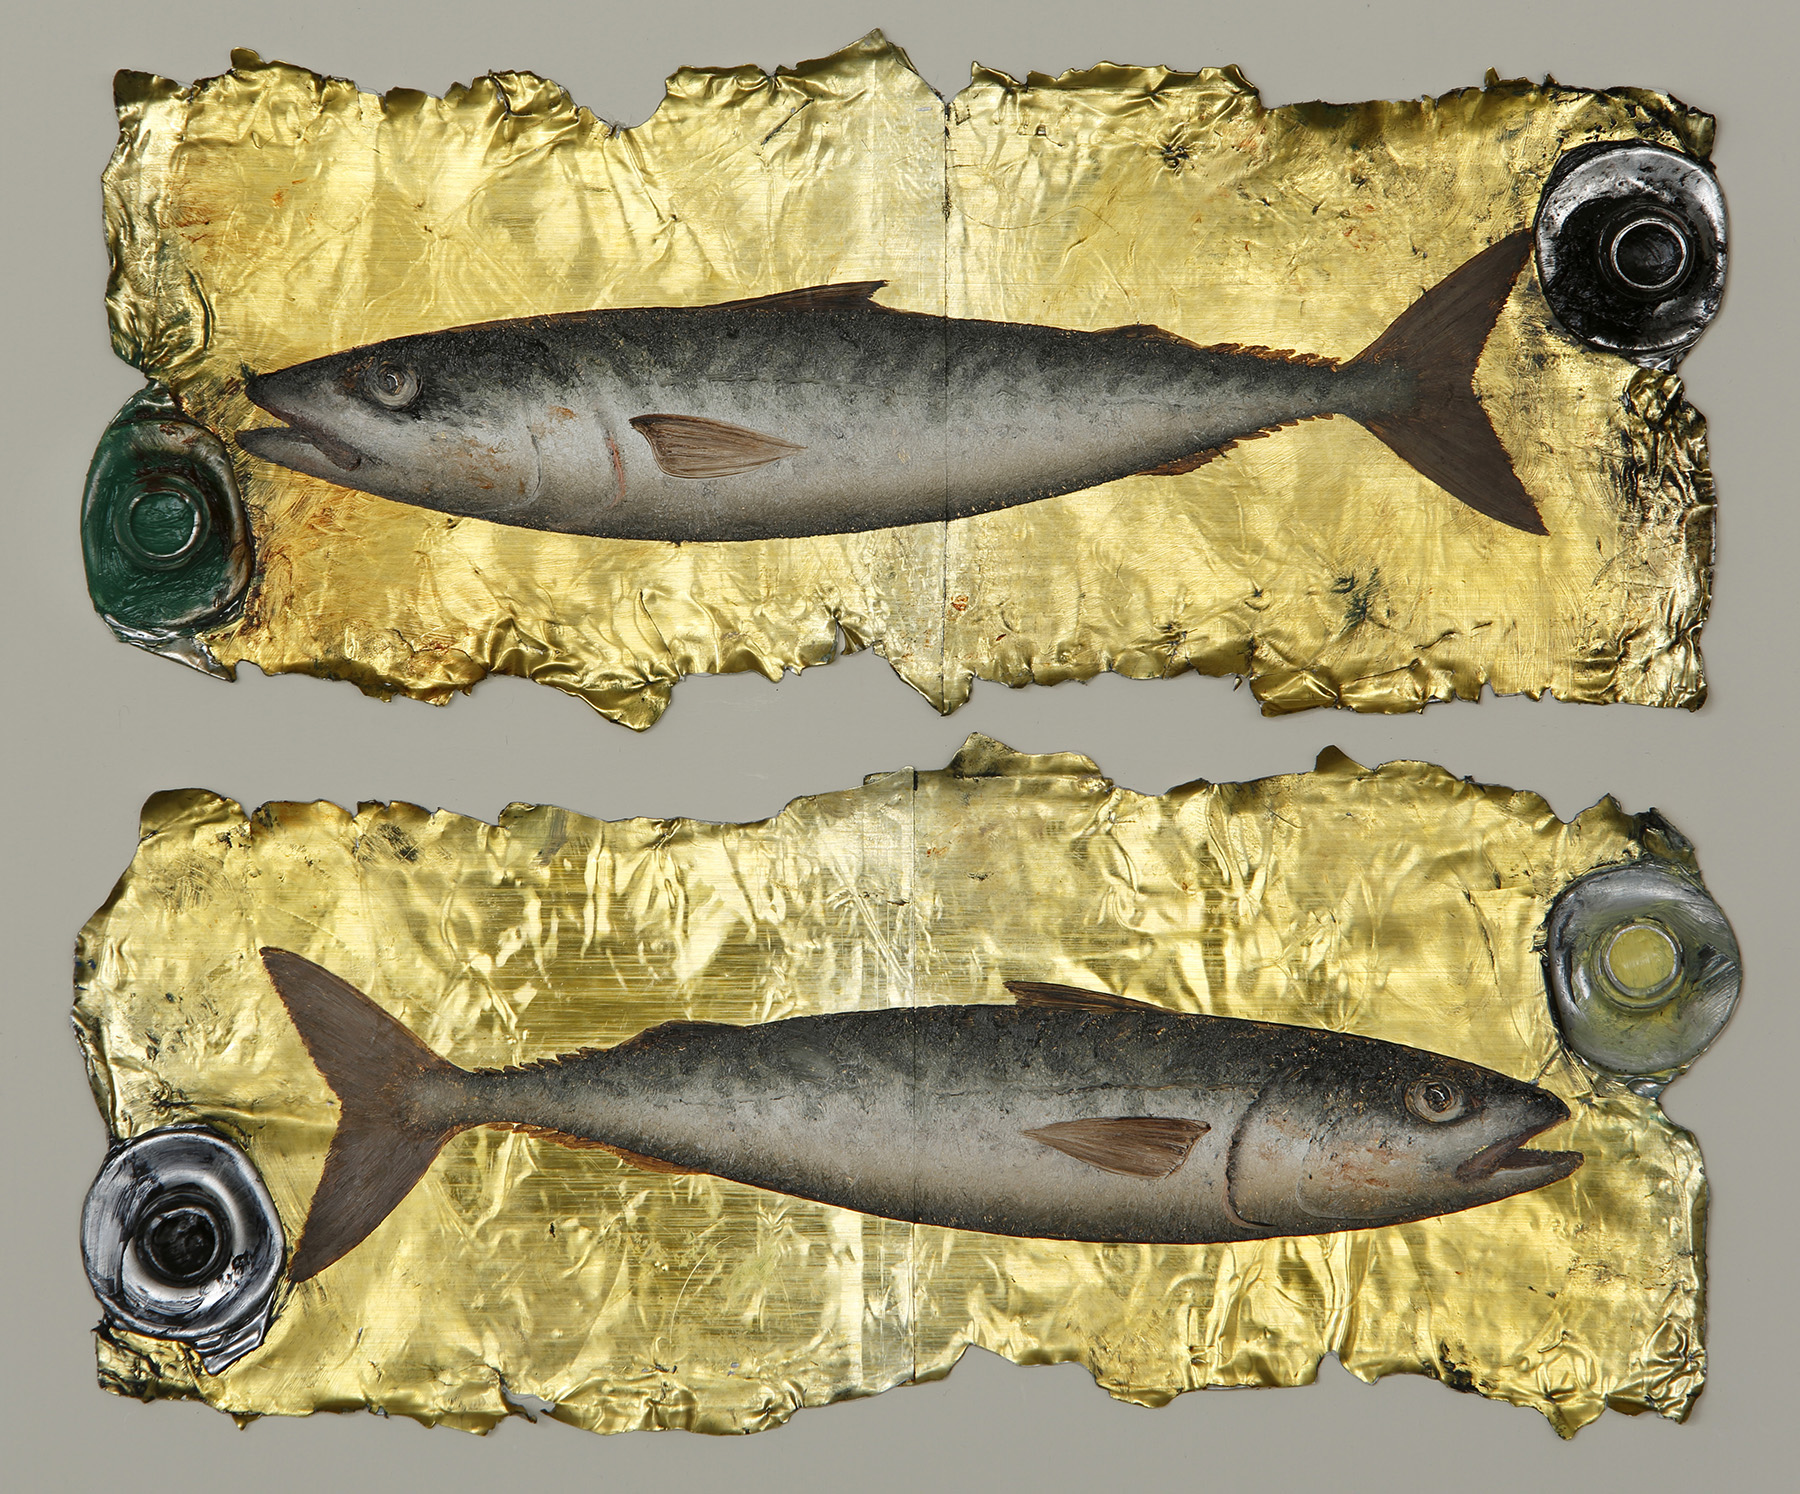 Artist: Donald Provan  Title: Double Mackerel  Size: 34 x 37 cm  Medium: Oil on paint tubes  Price: £1500   Buy Now